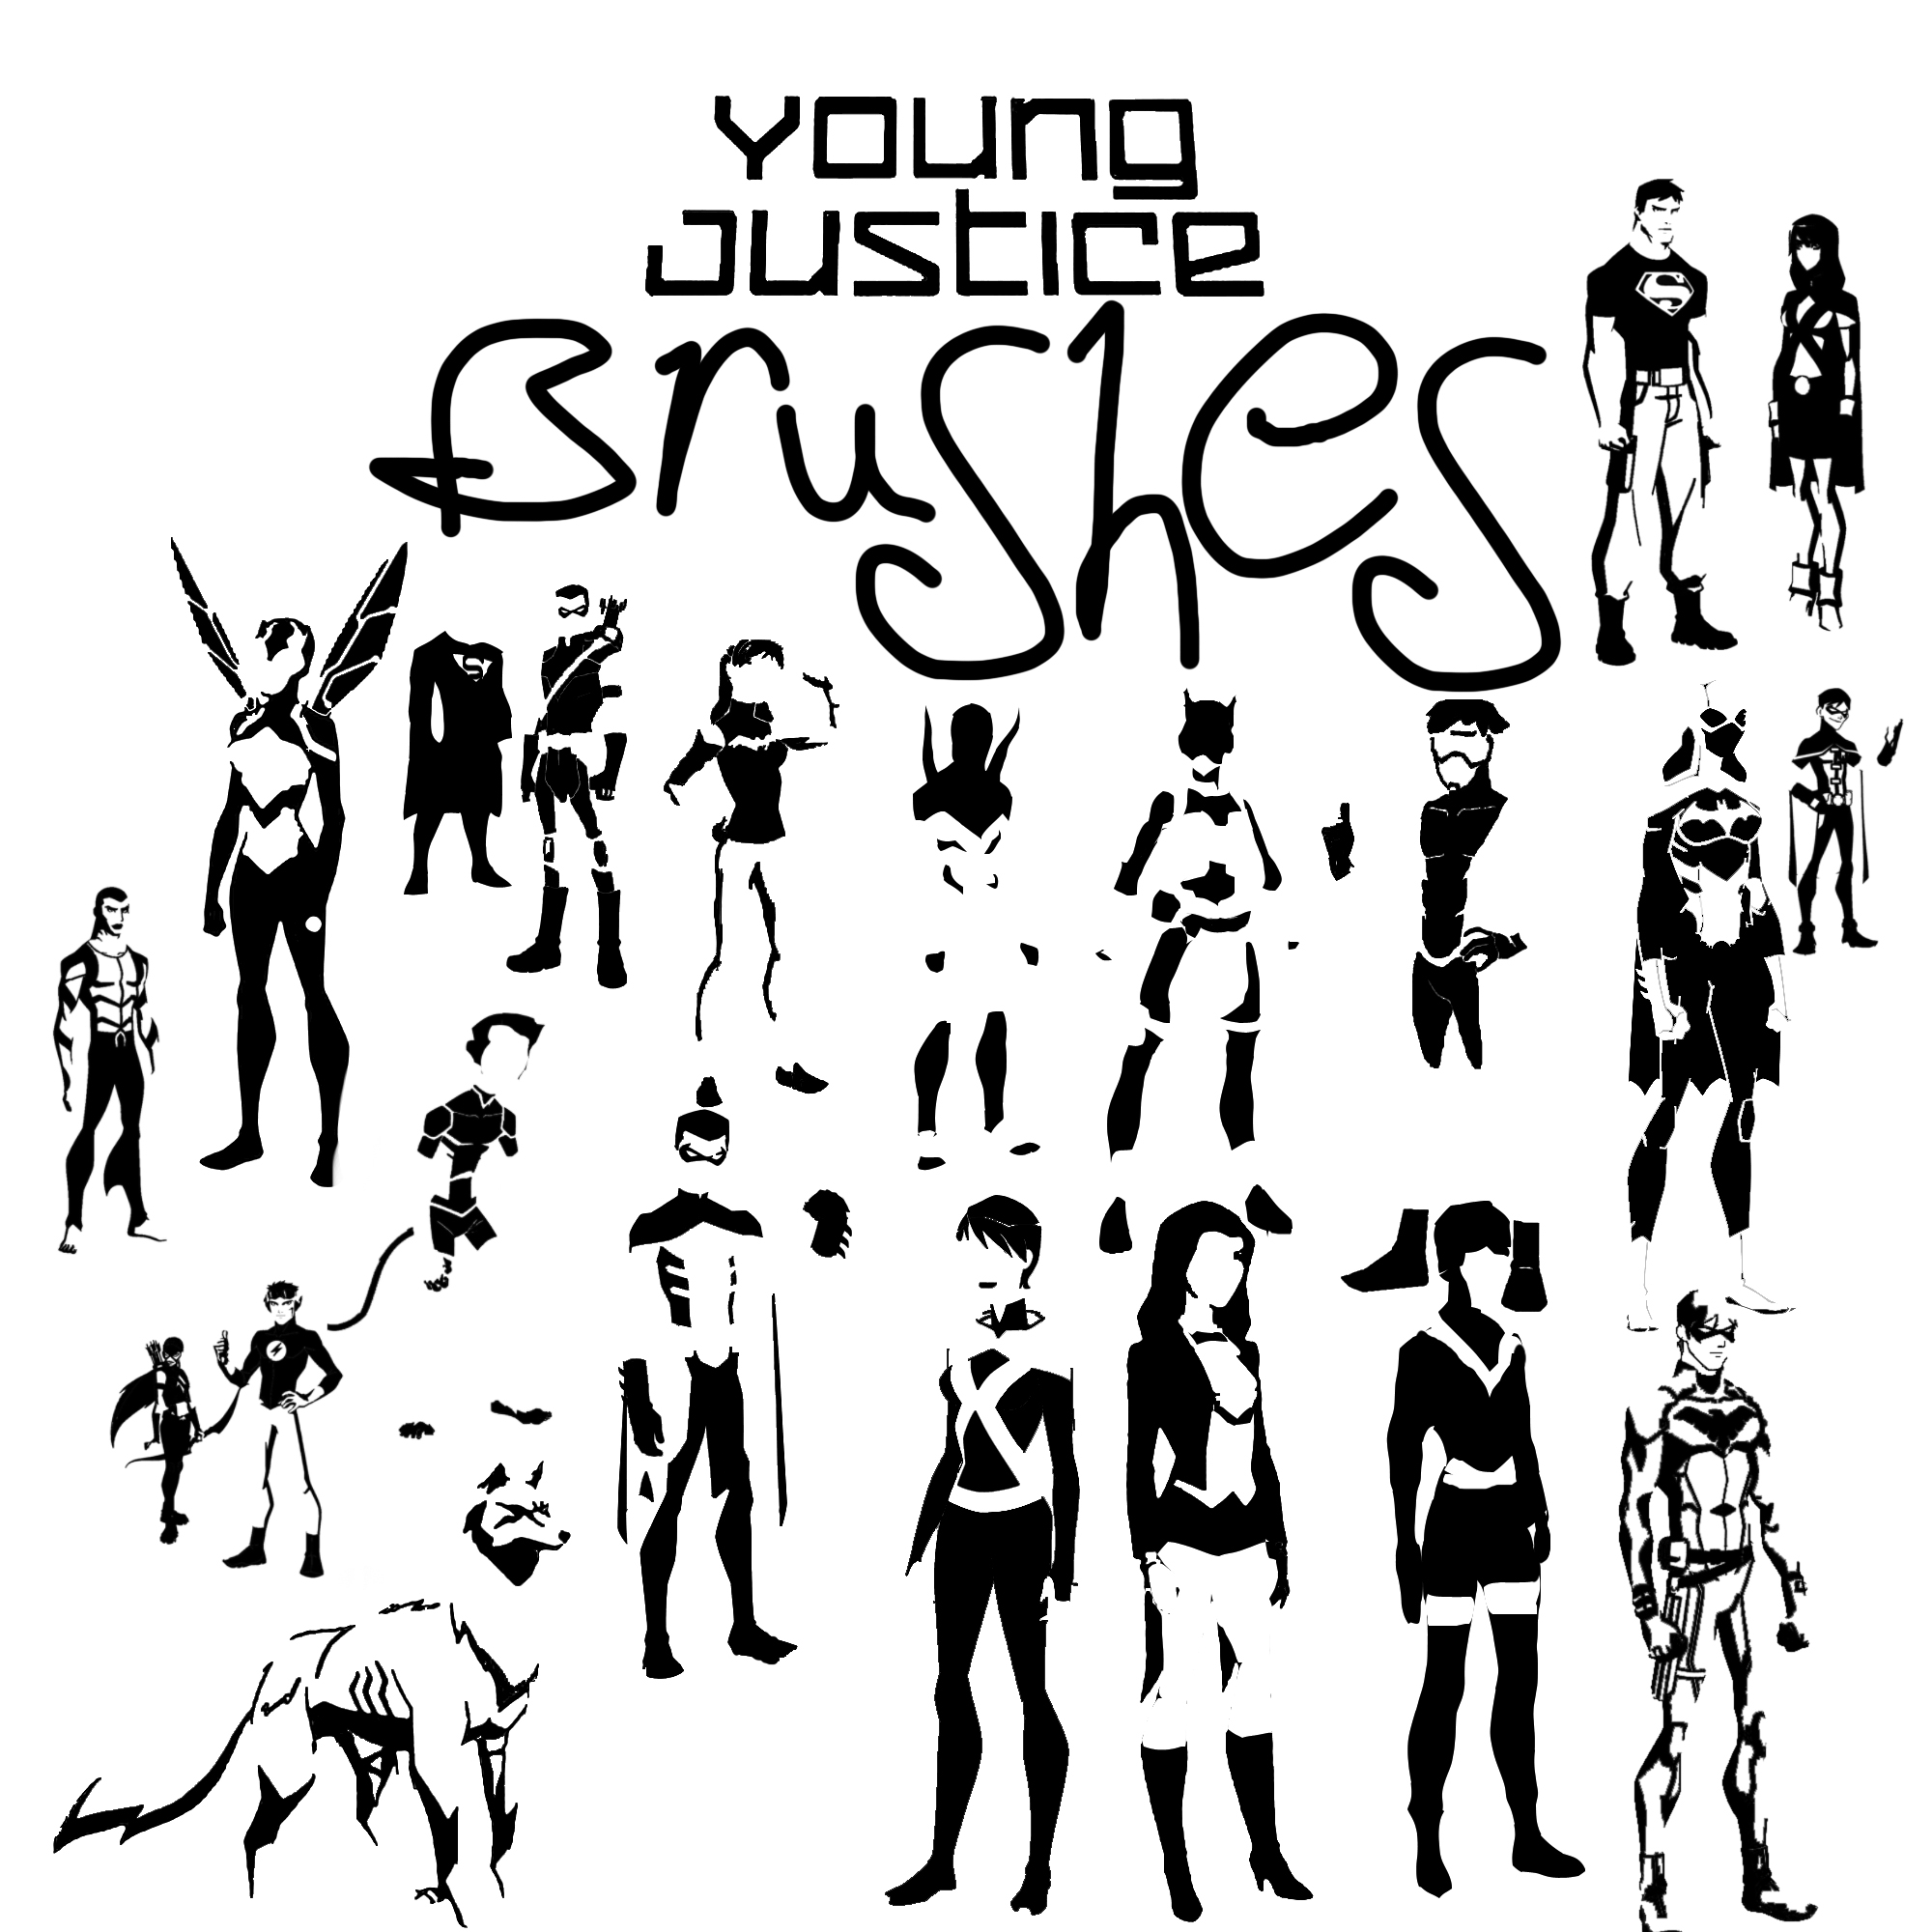 Full Young Justice Brush pack by zutara-canon